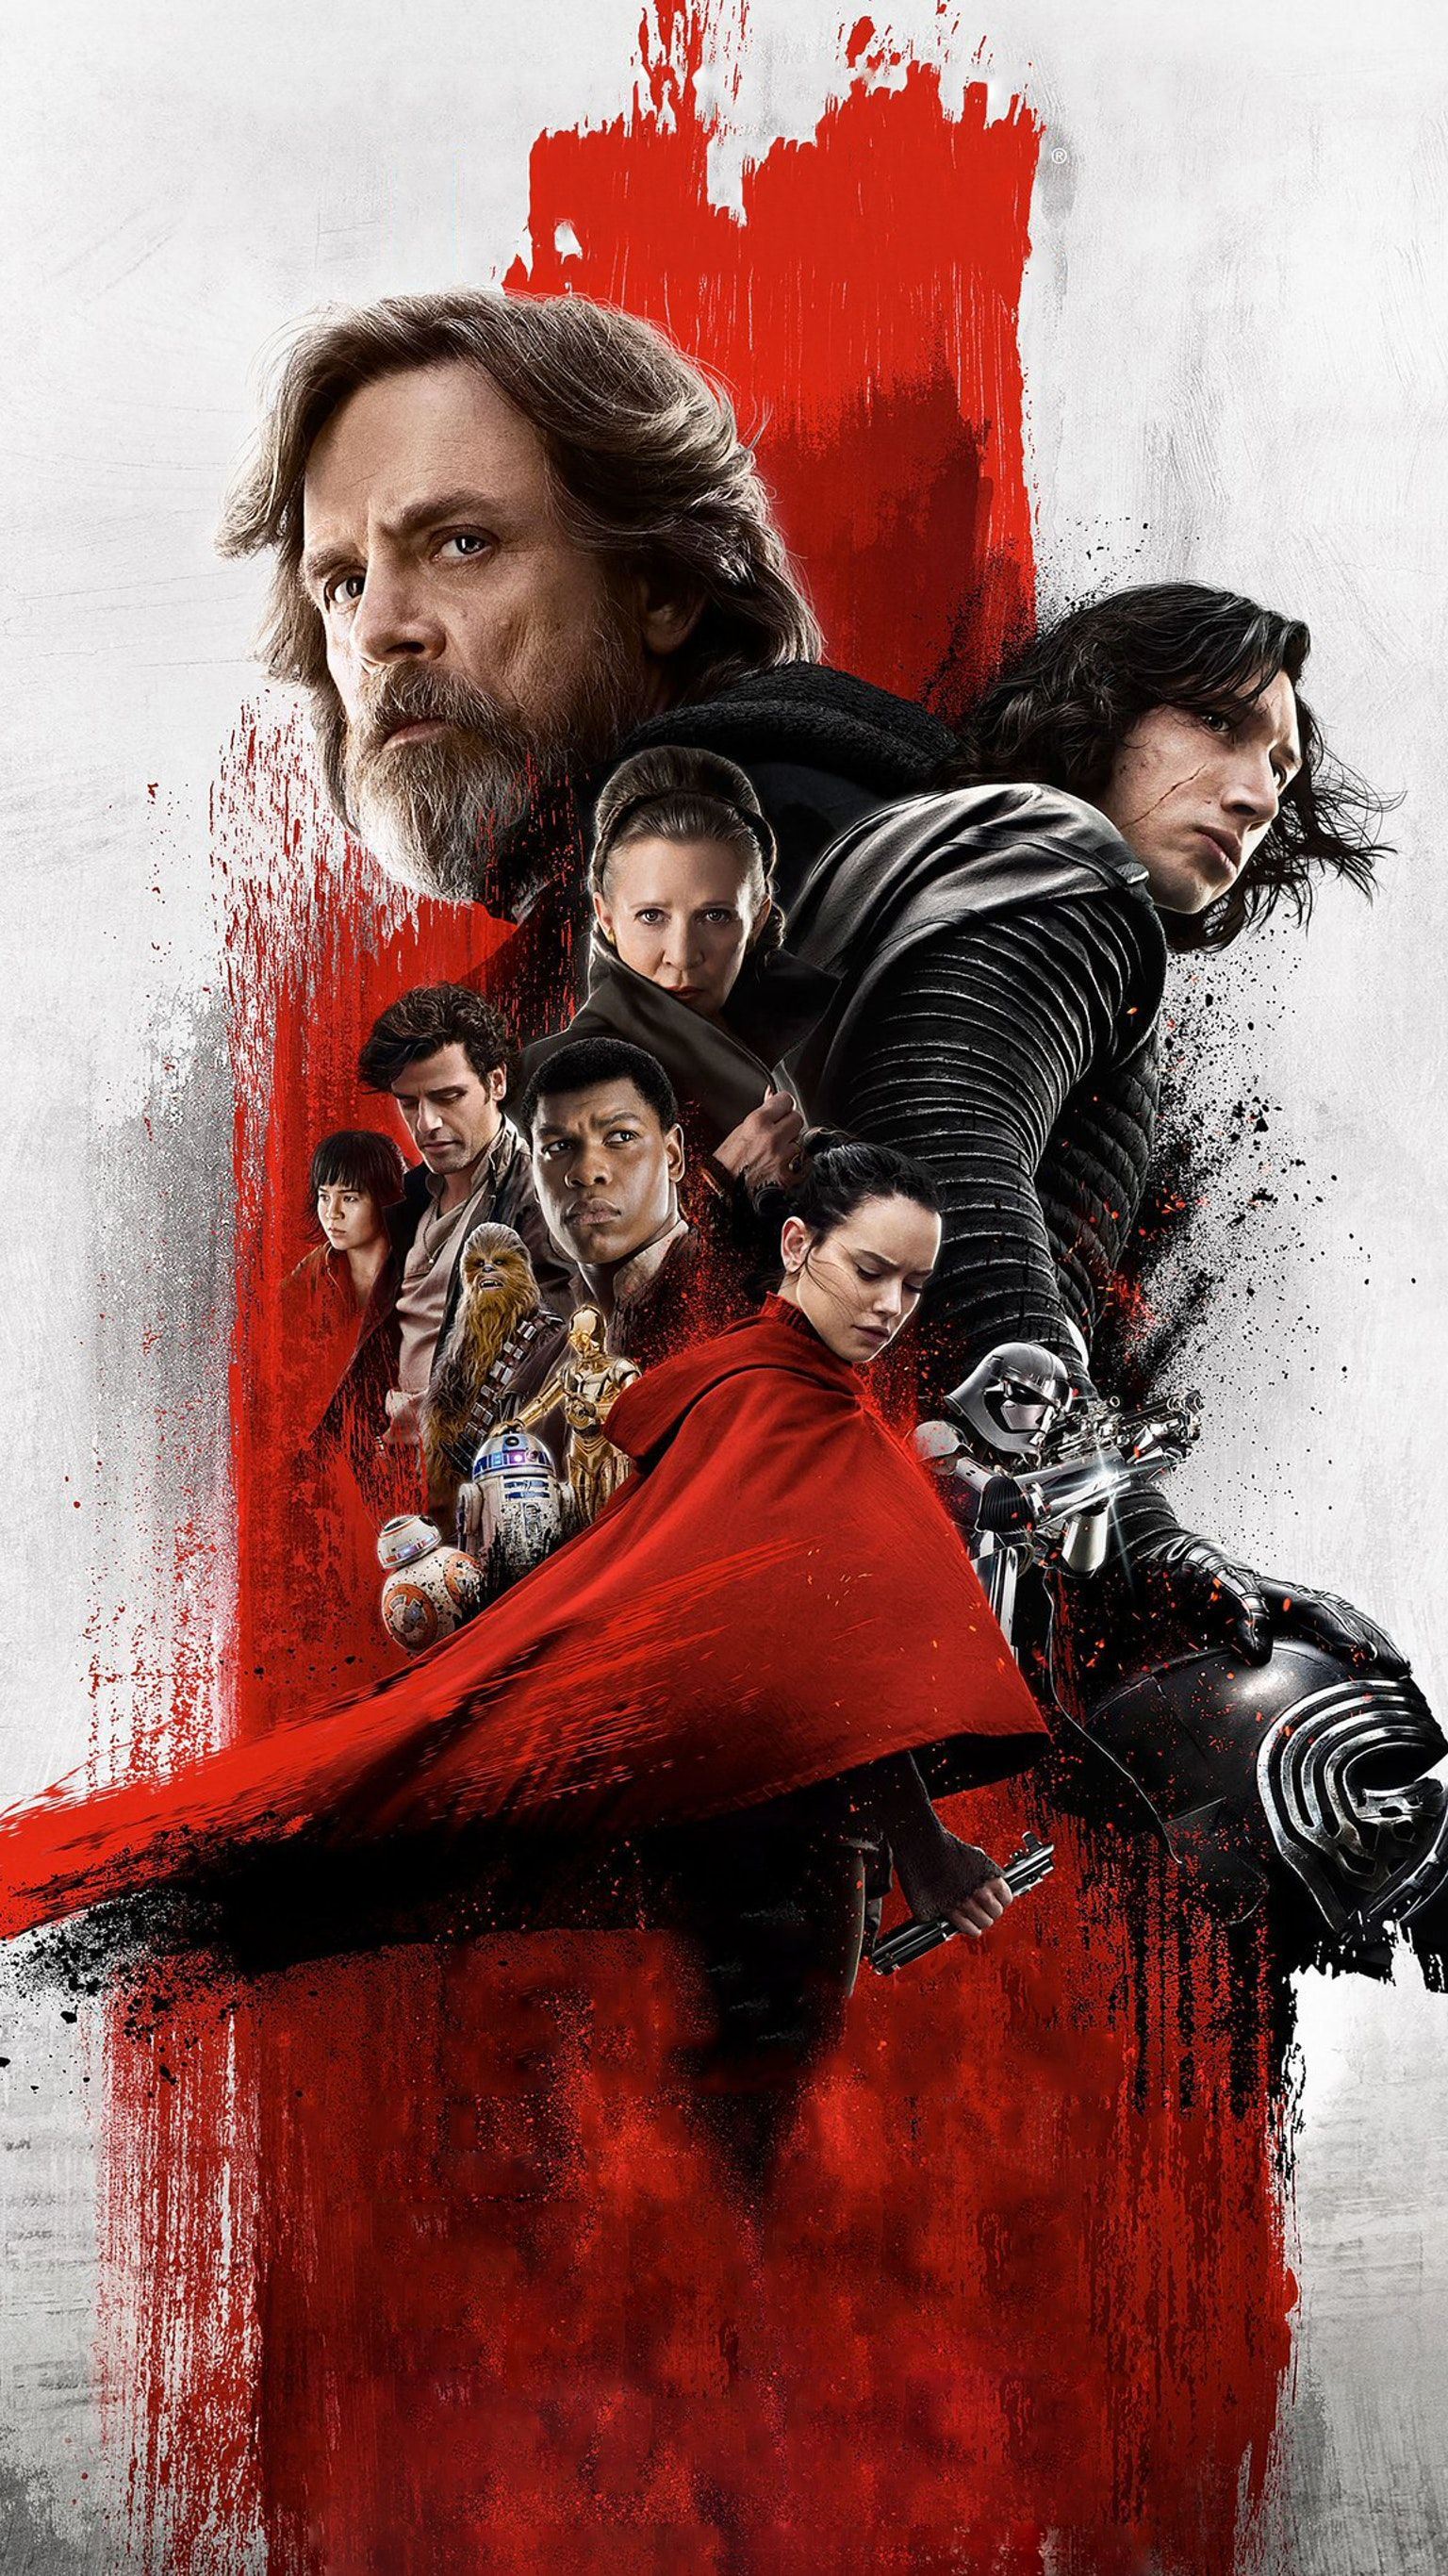 Star Wars The Last Jedi Hd Wallpaper Posted By Samantha Johnson